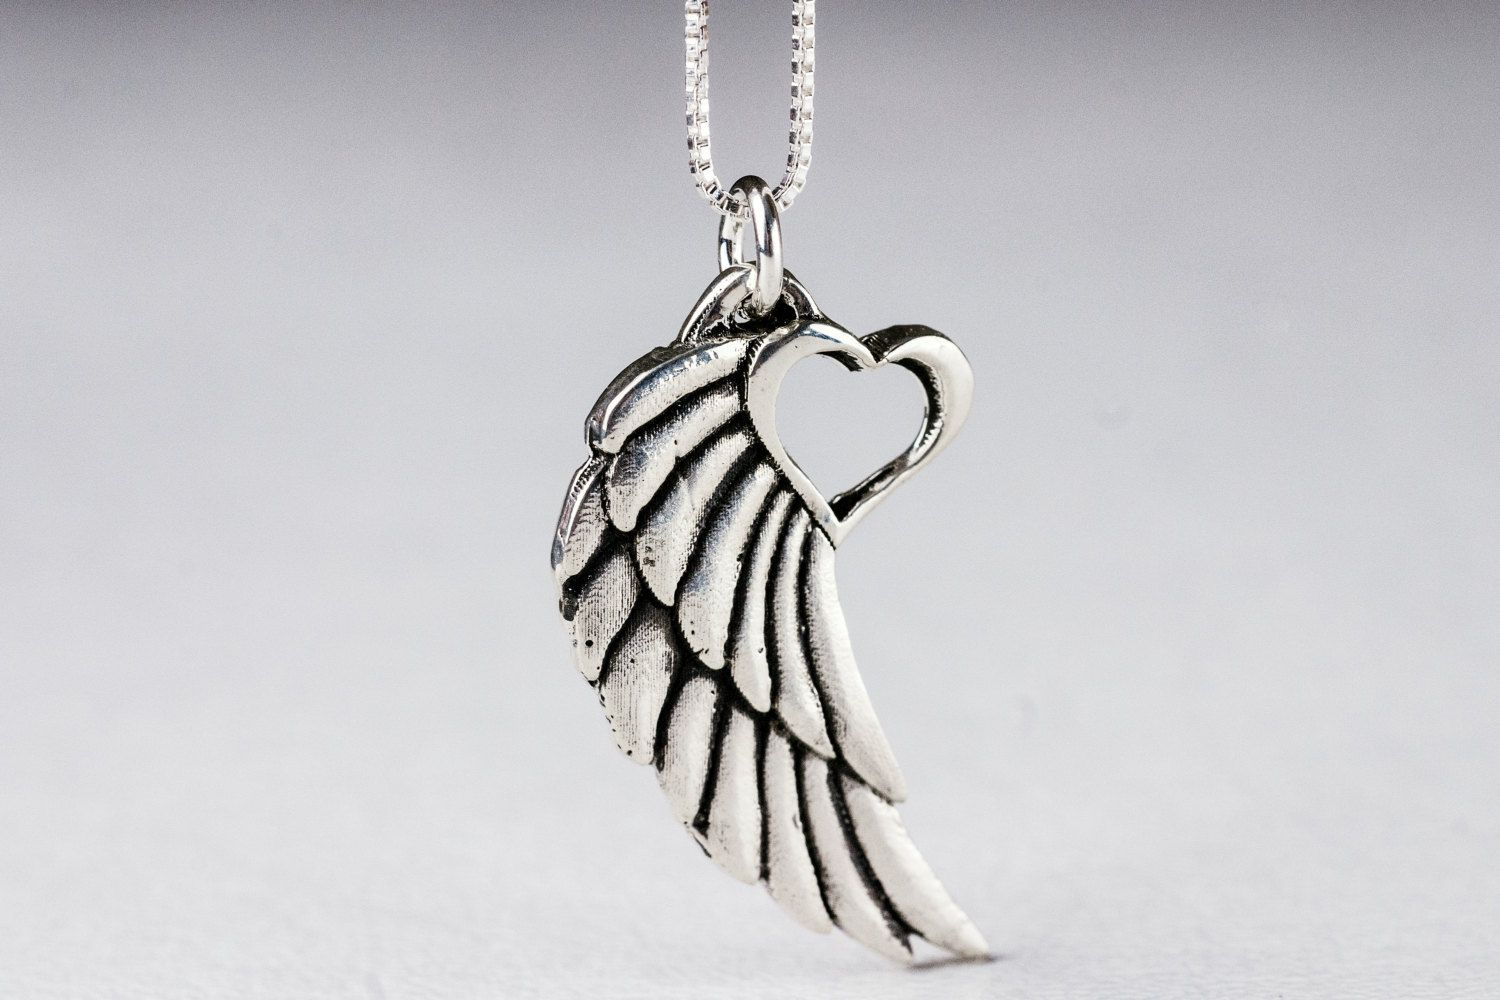 Angel wing necklace with heart pendant tattoo winged heart necklace angel wing necklace with heart pendant tattoo winged heart necklace sterling silver aloadofball Gallery